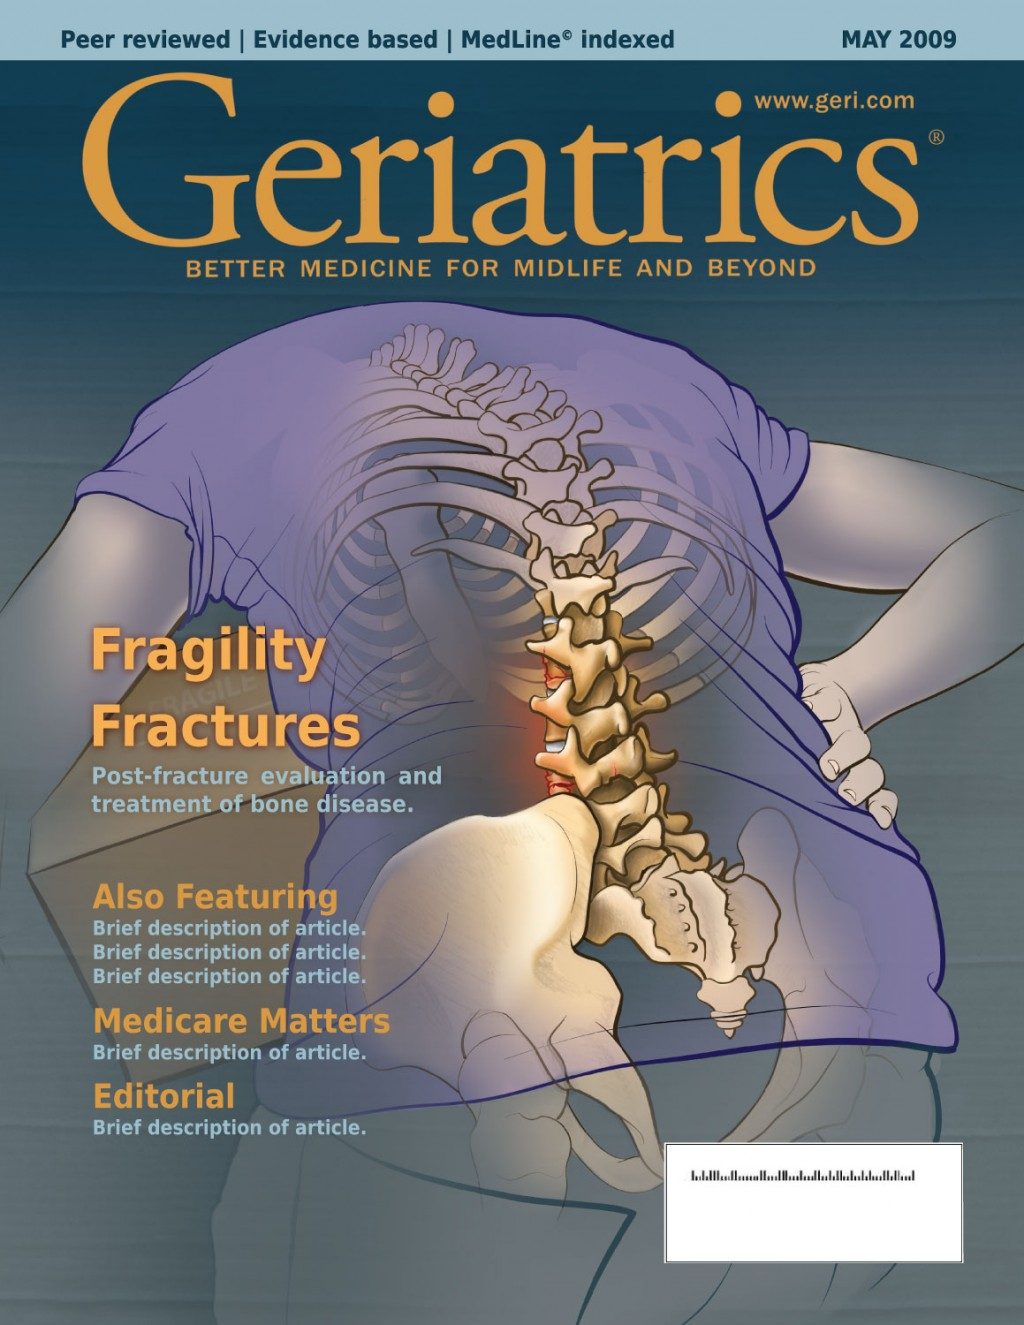 Geriatrics Magazine Mock-up. With a full-color illustration showing a fragility fracture in an elderly patient.